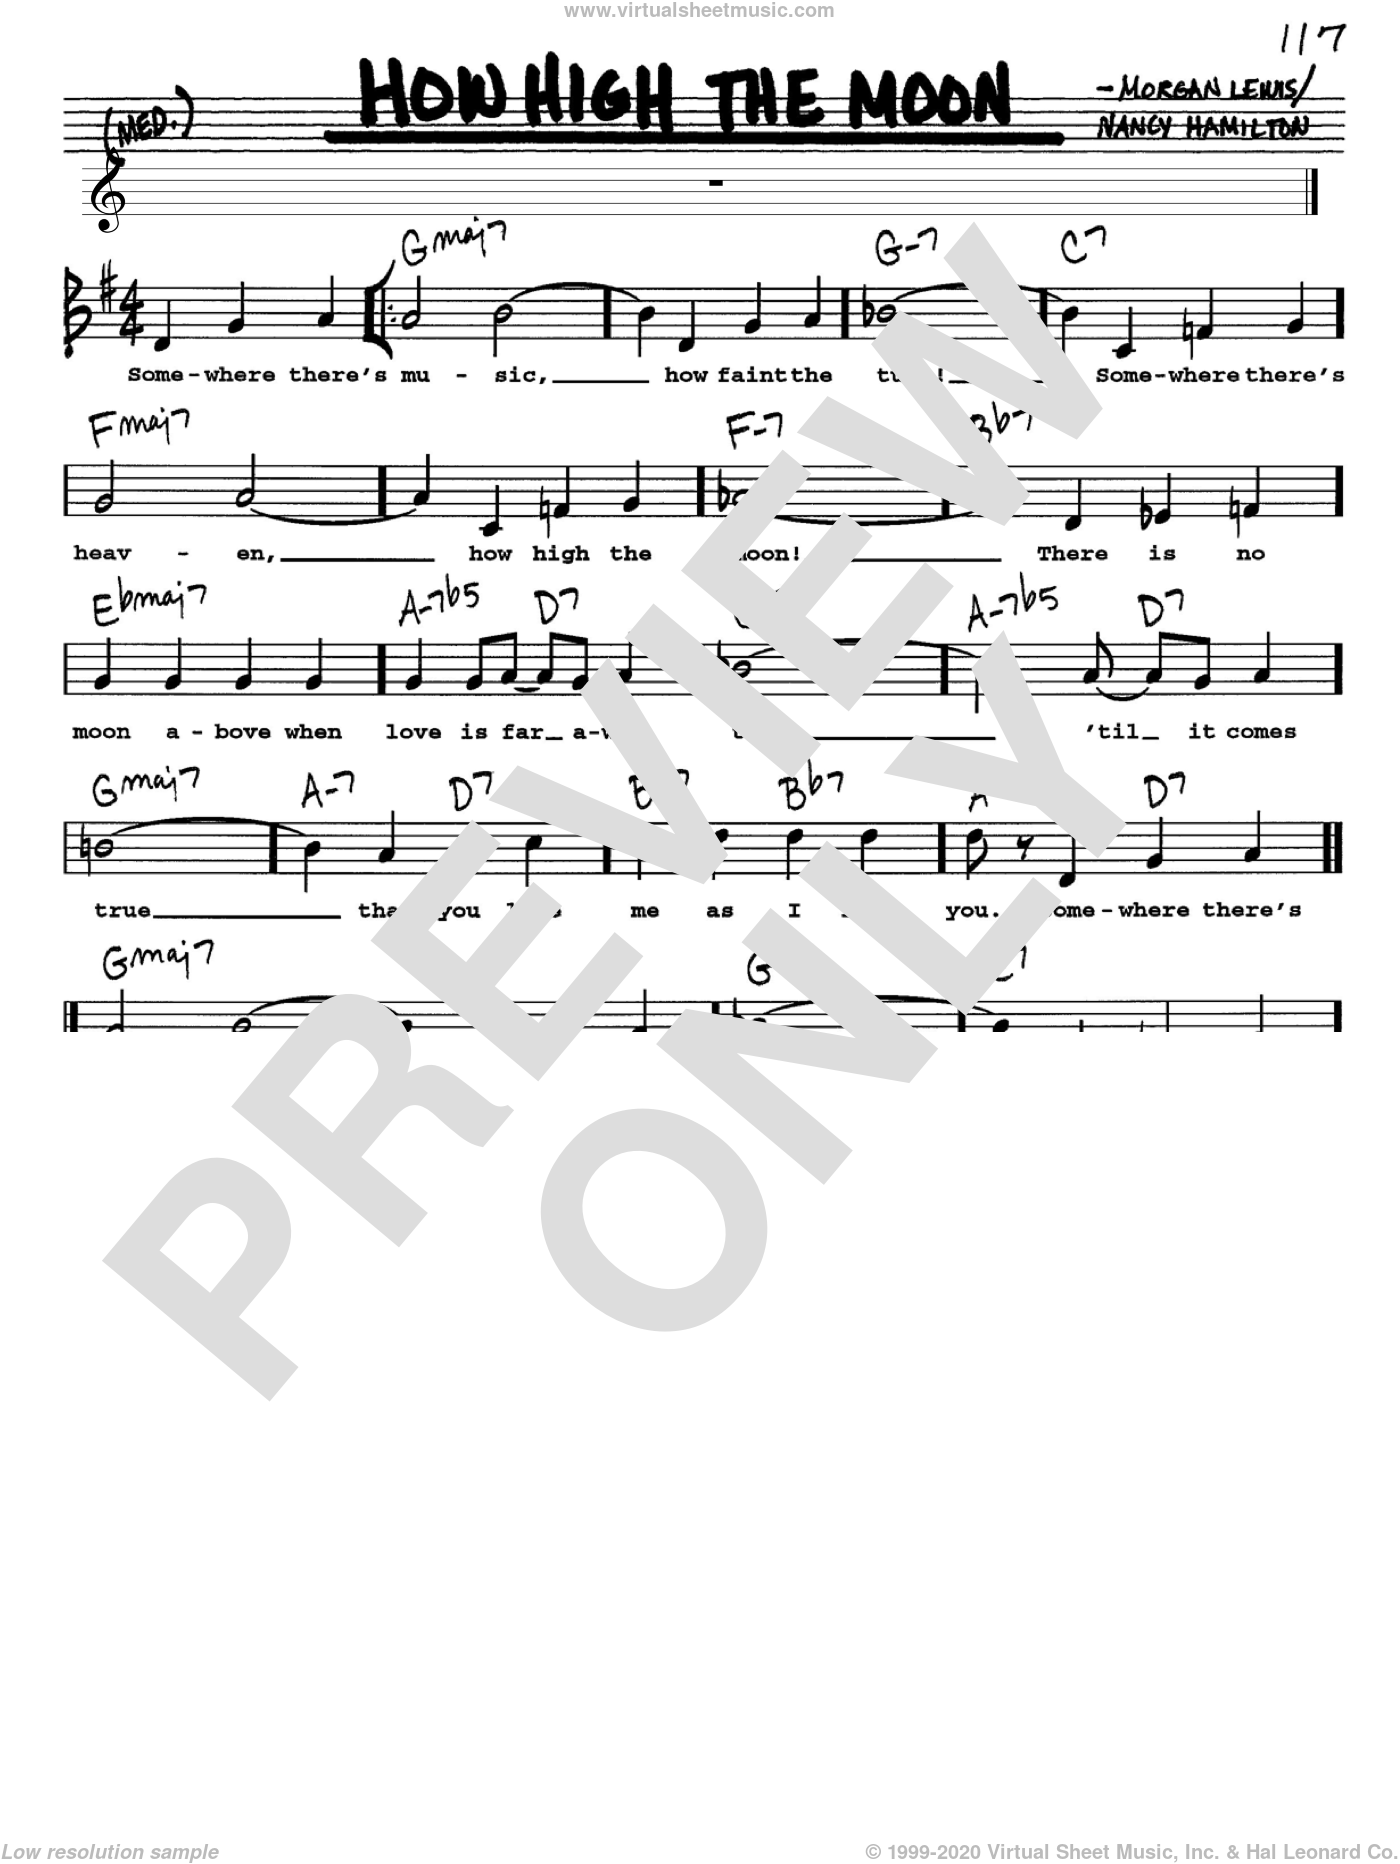 How High The Moon sheet music for voice and other instruments (Vocal Volume 1) by Les Paul, Morgan Lewis and Nancy Hamilton, intermediate. Score Image Preview.